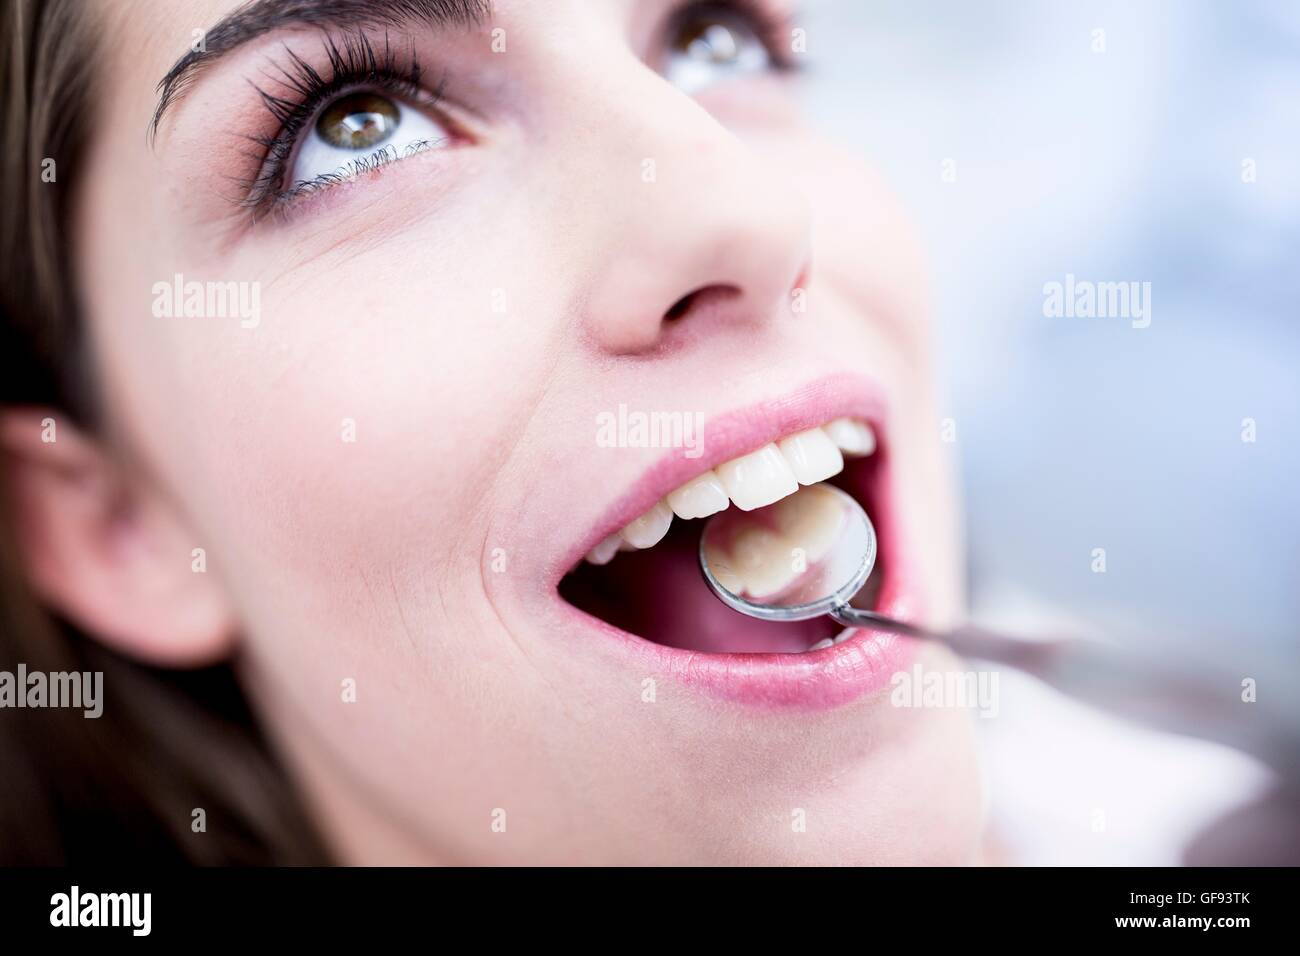 MODEL RELEASED. Close-up of woman while dental check-up. - Stock Image